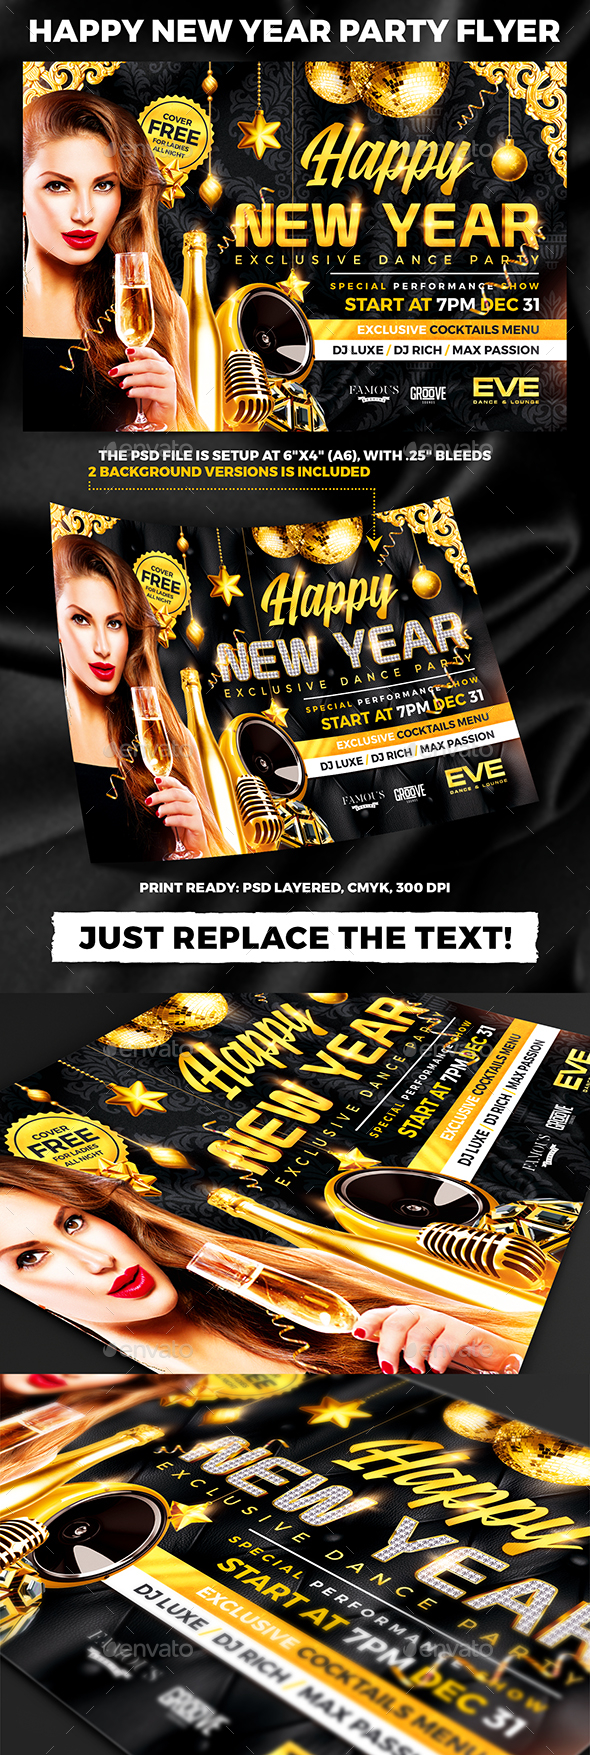 Happy New Year Party Flyer - Holidays Events